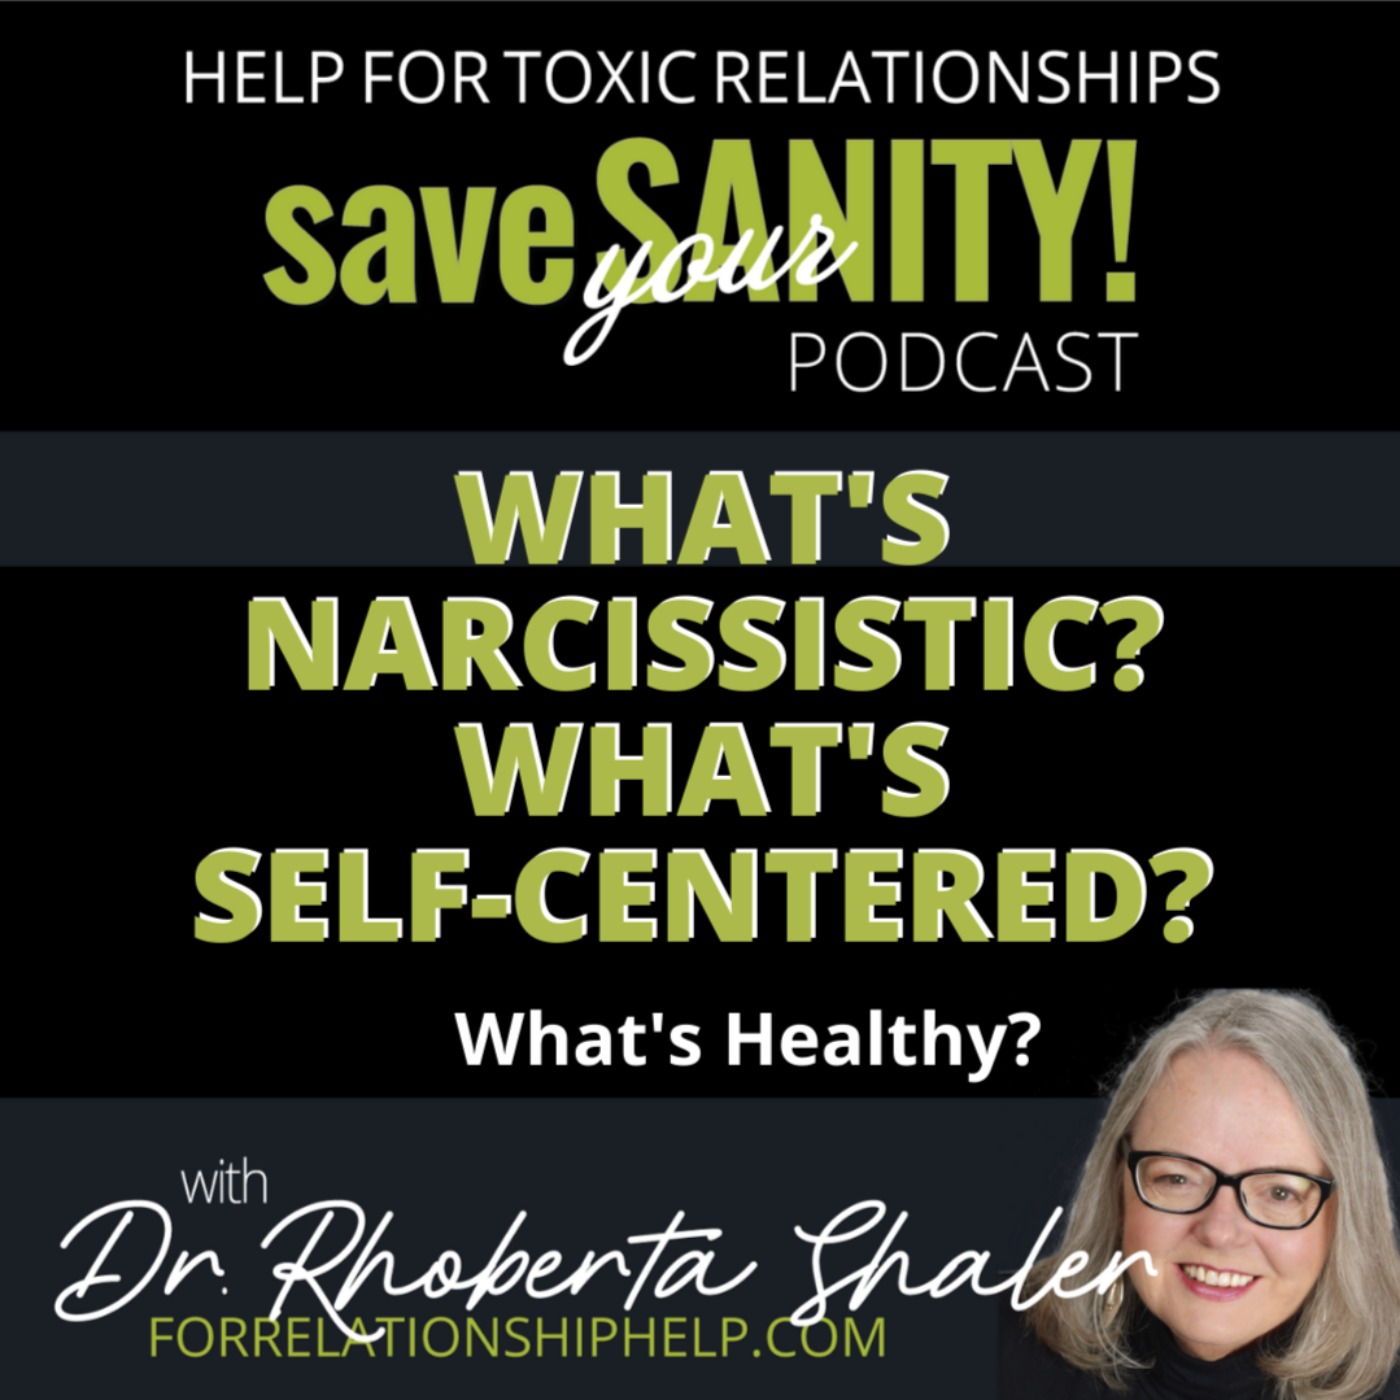 What's Narcissistic? What's Self-Centered,? What's Healthy?